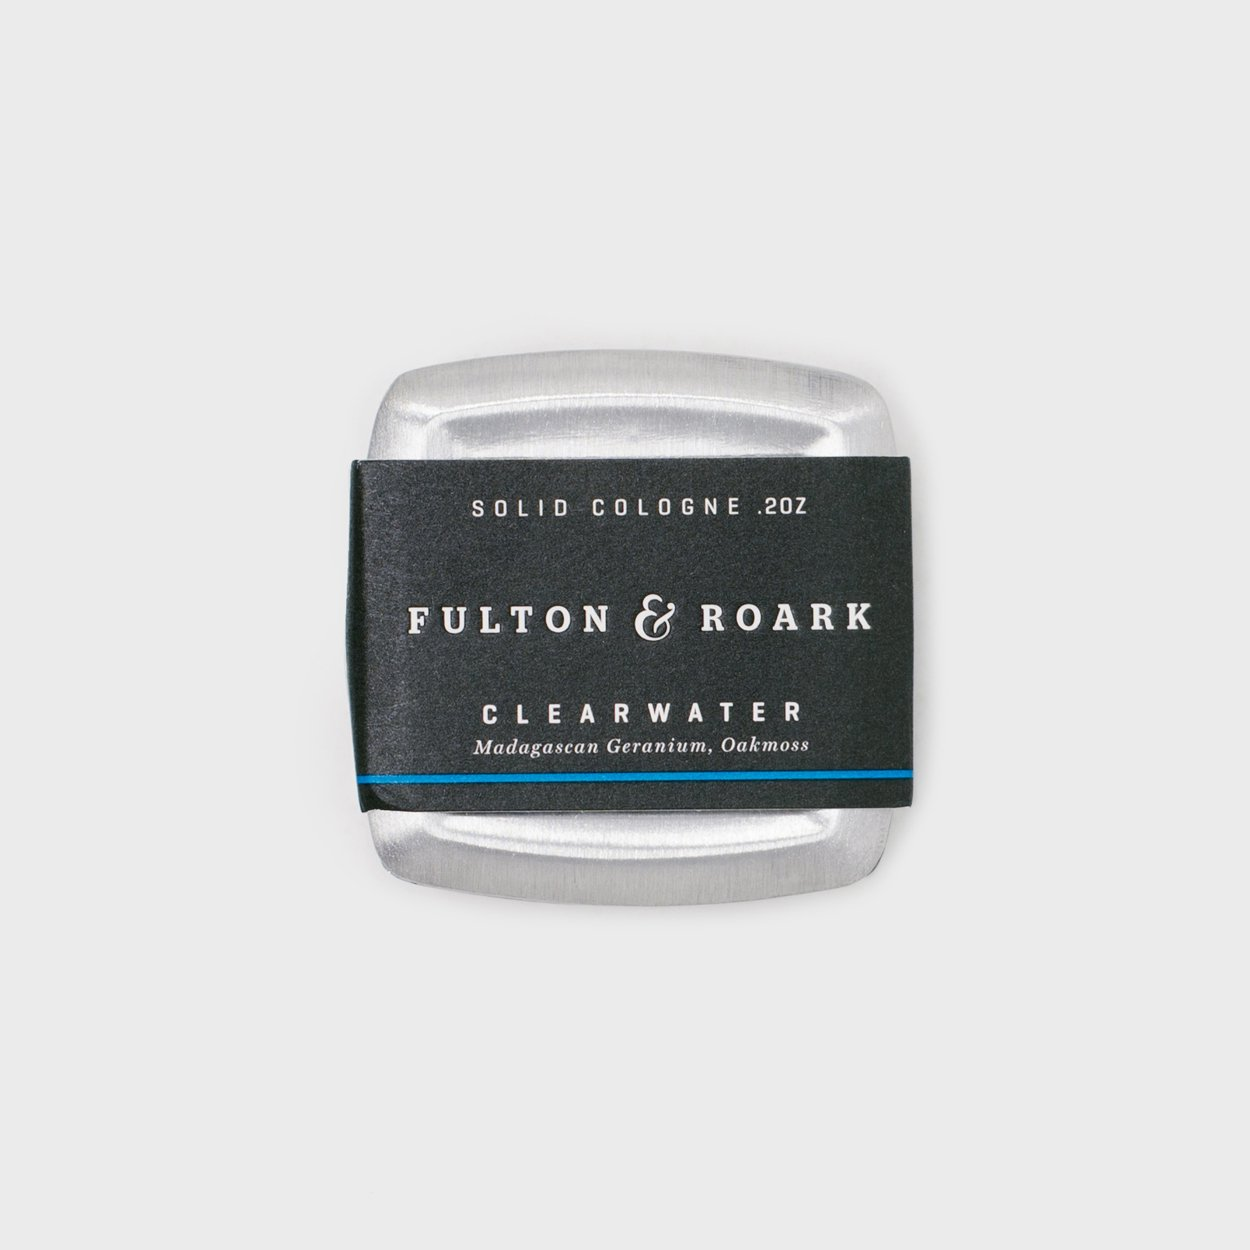 Fulton & Roark Solid Cologne-Clearwater - Cool Material